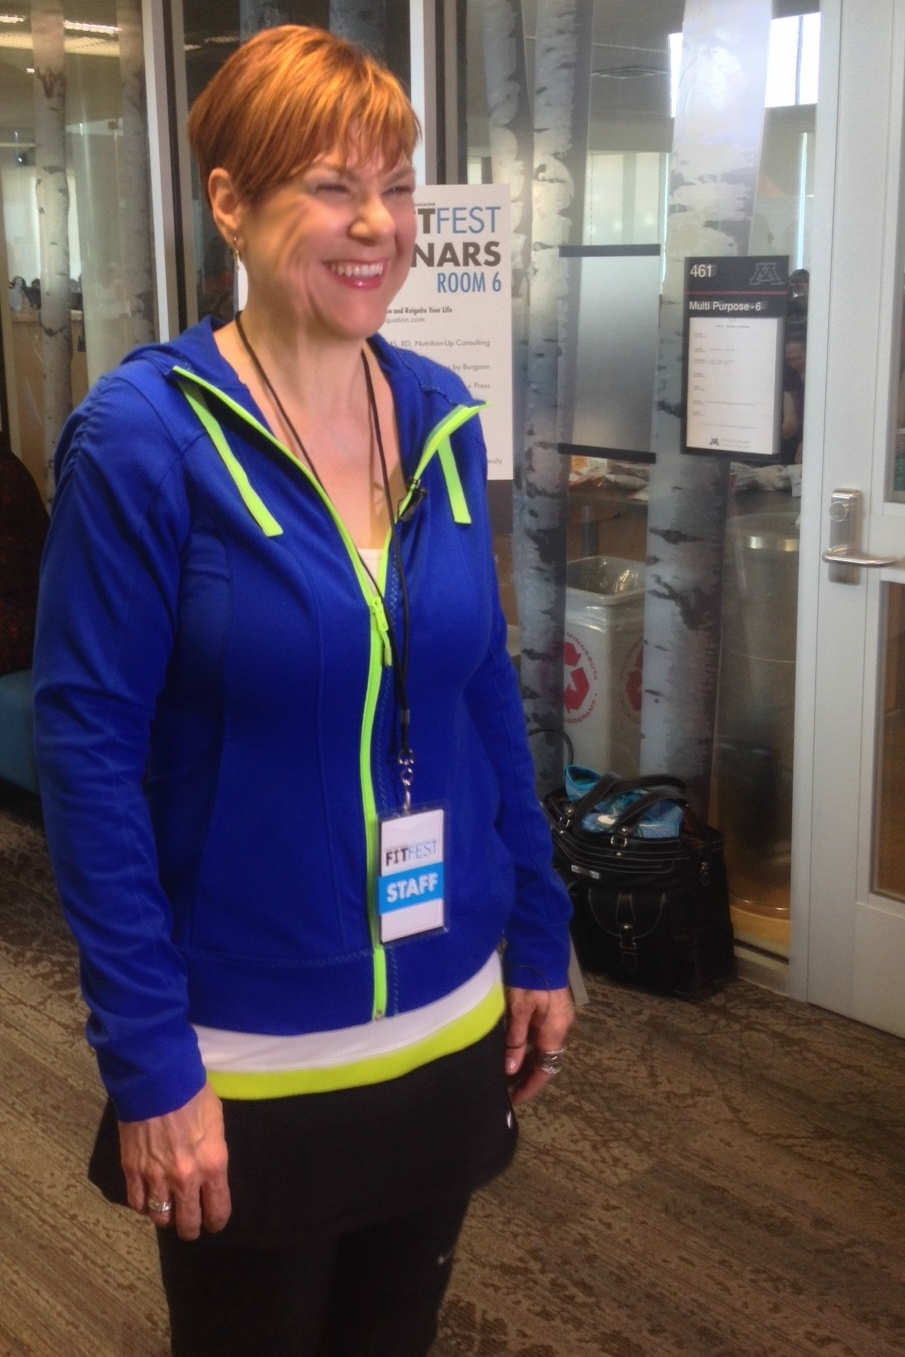 Lori Schaefer of In the Equation at MSP FitFest.2015